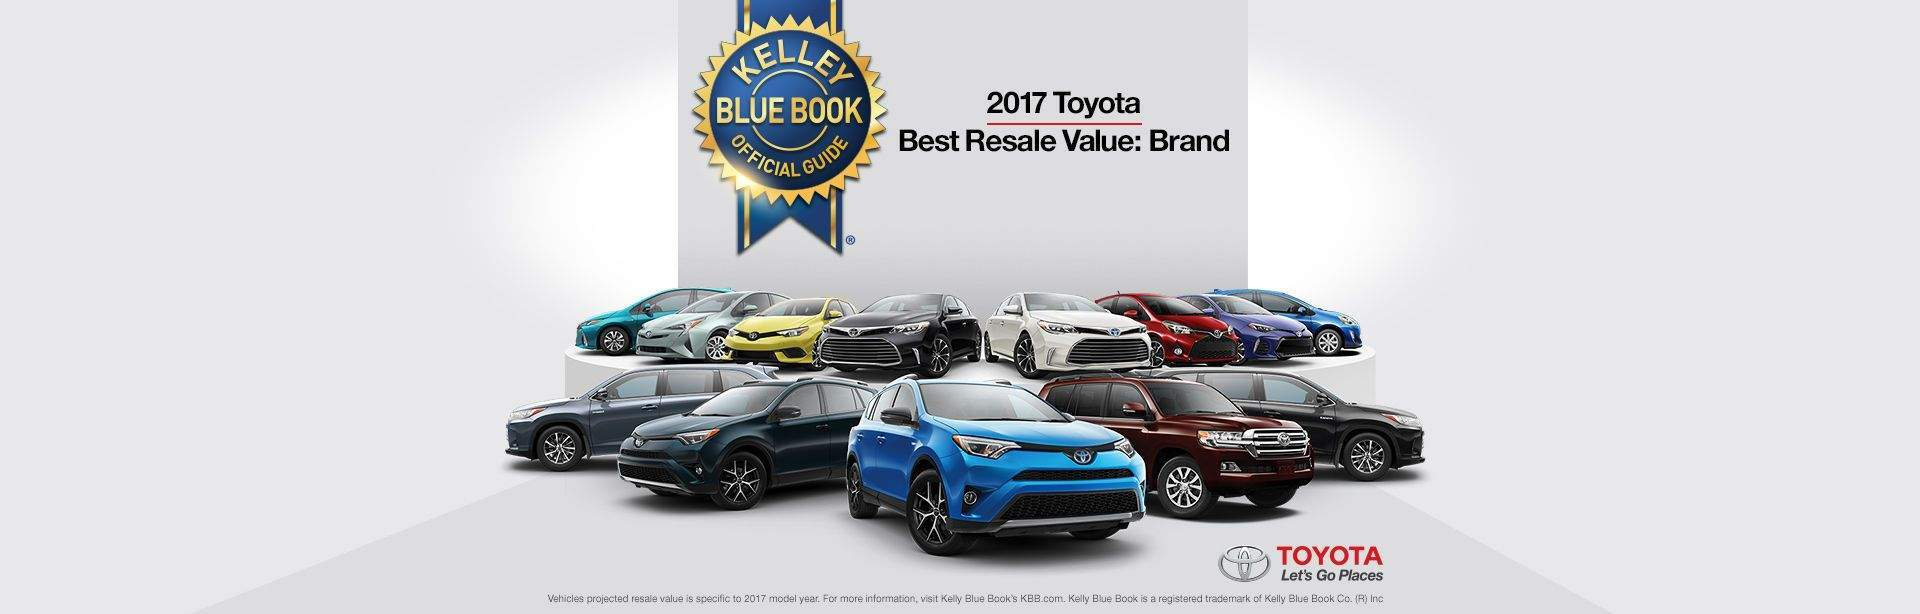 2017 Best Resale Brand